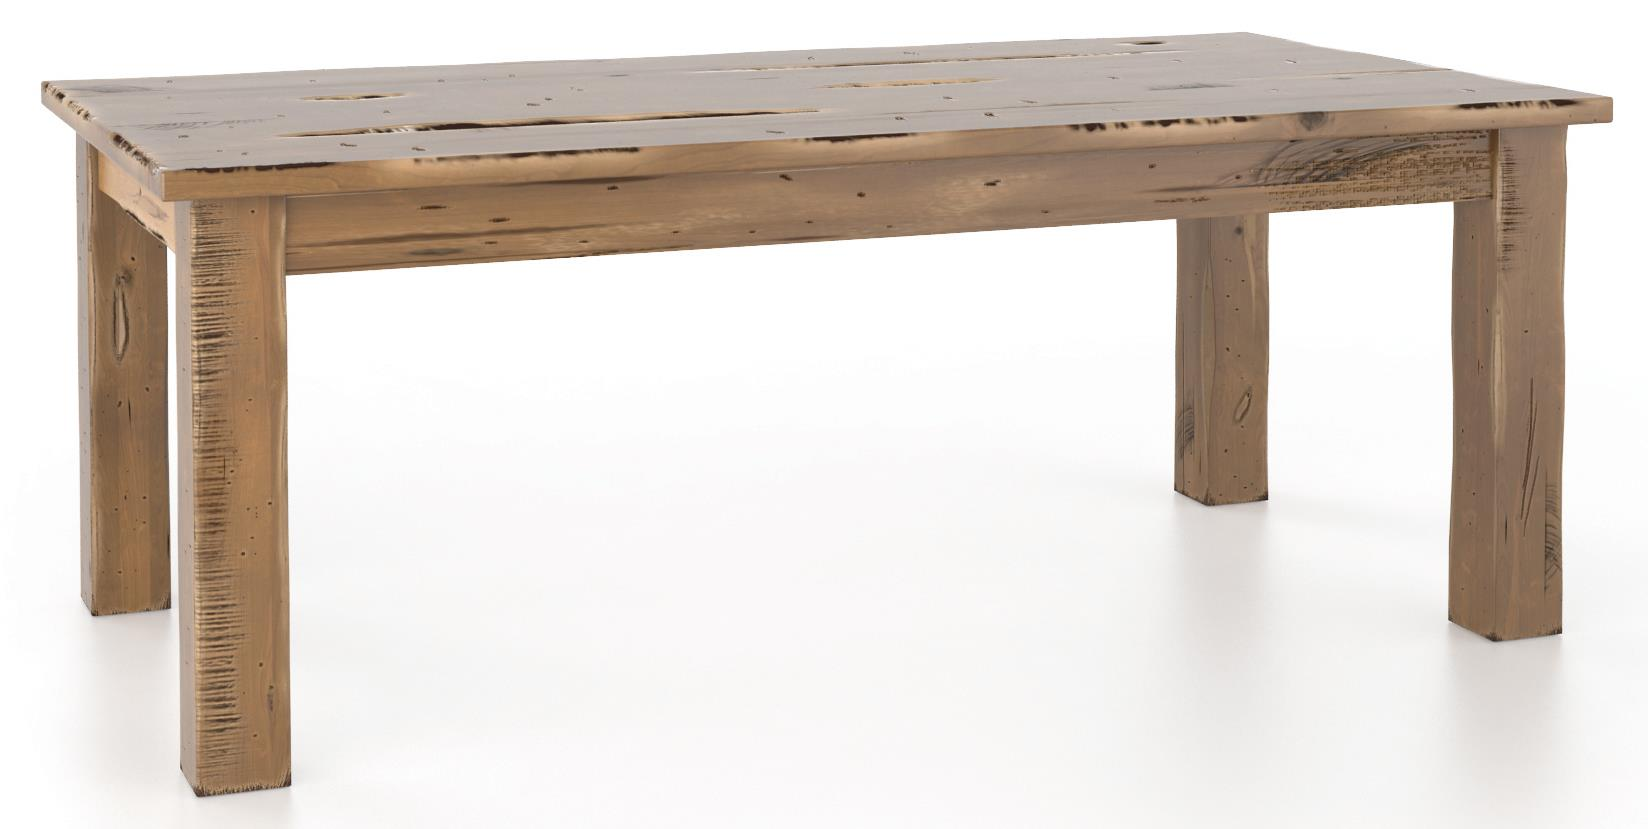 Champlain - Living Customizable Coffee Table by Canadel at Jordan's Home Furnishings